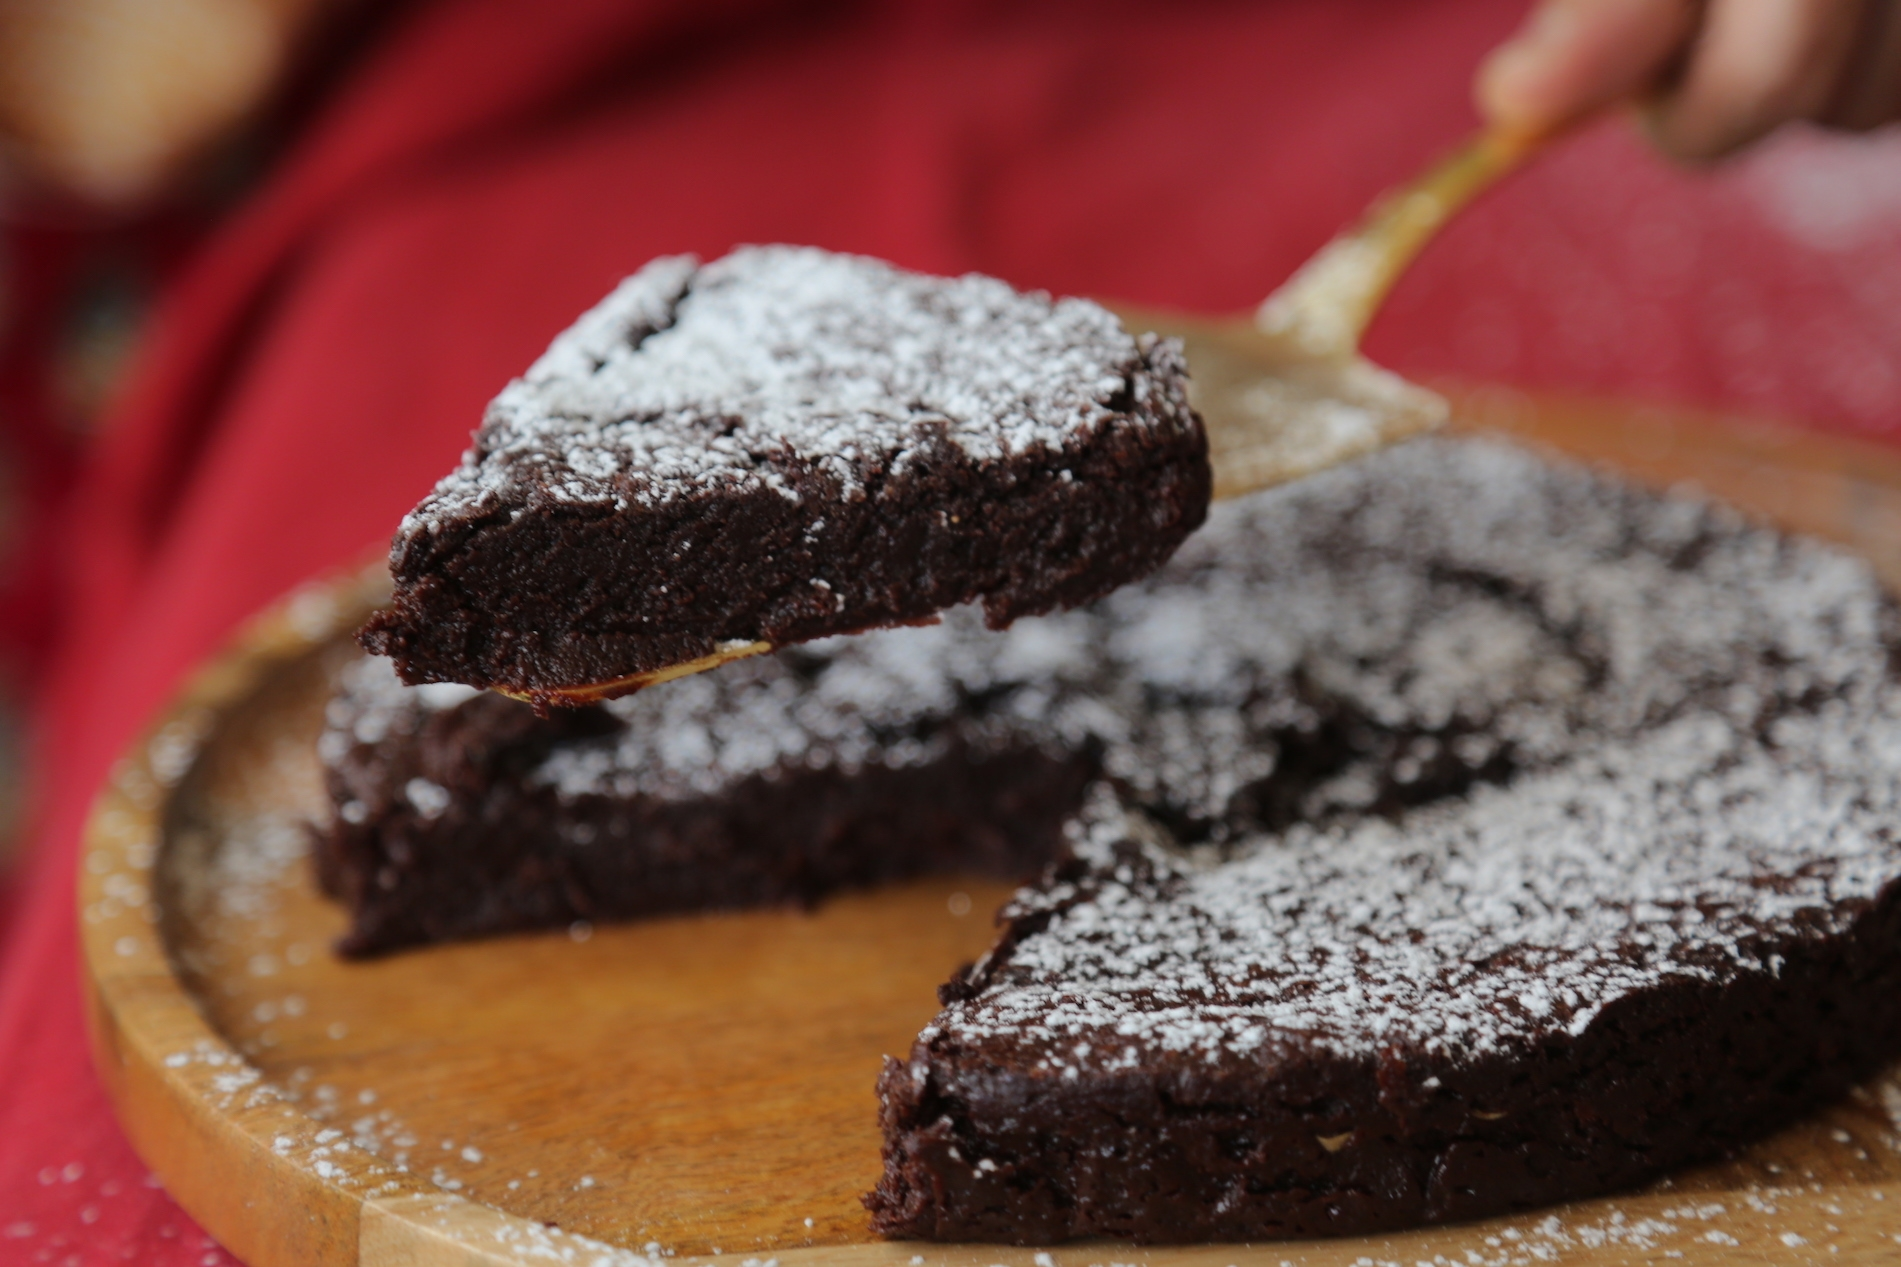 Flourless Chocolate Cake with Chocolate Chips